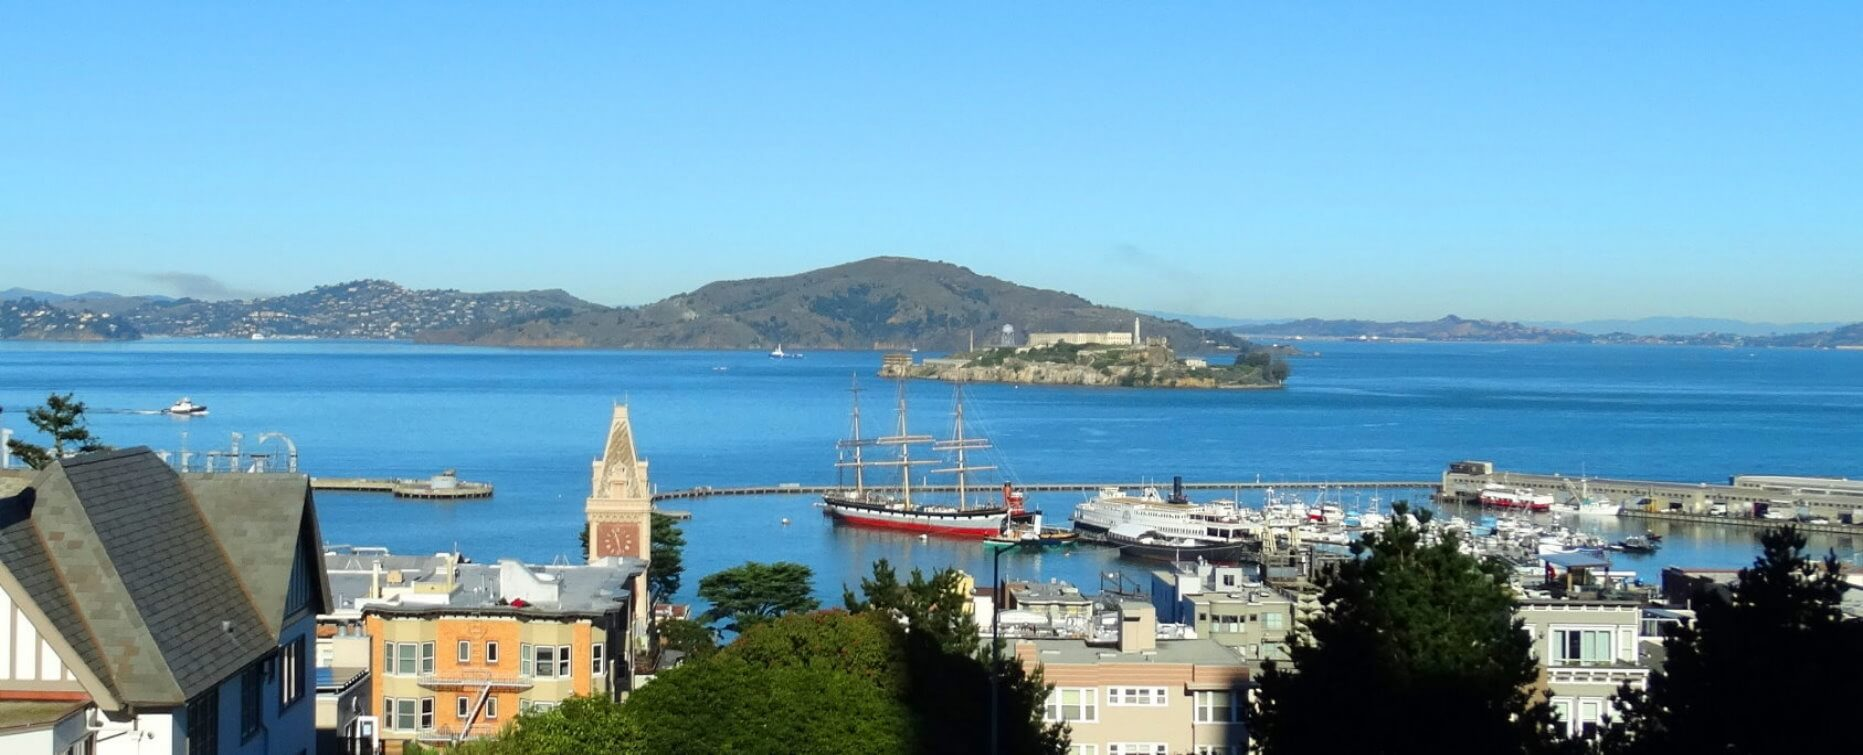 guided-toursof-alcatrz-and-san_francisco-city-attractions